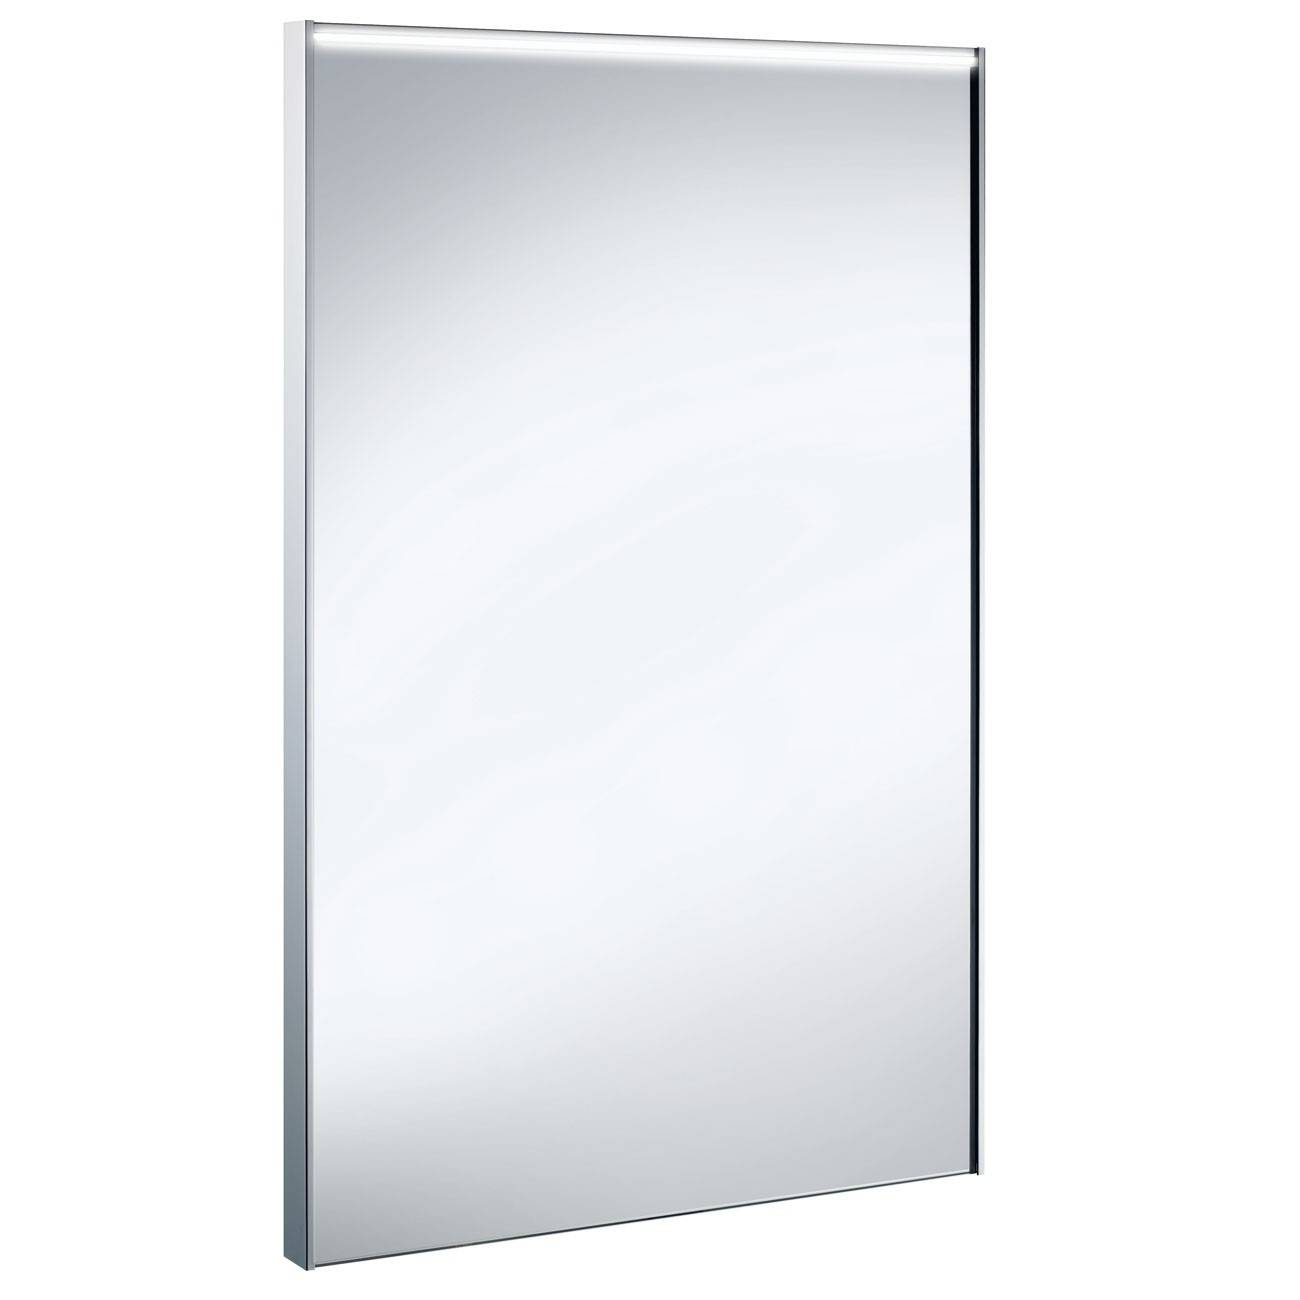 Bathroom Mirrors, Vanity Mirrors, Makeup Mirrors - Rogerseller with regard to Slim Wall Mirrors (Image 4 of 15)